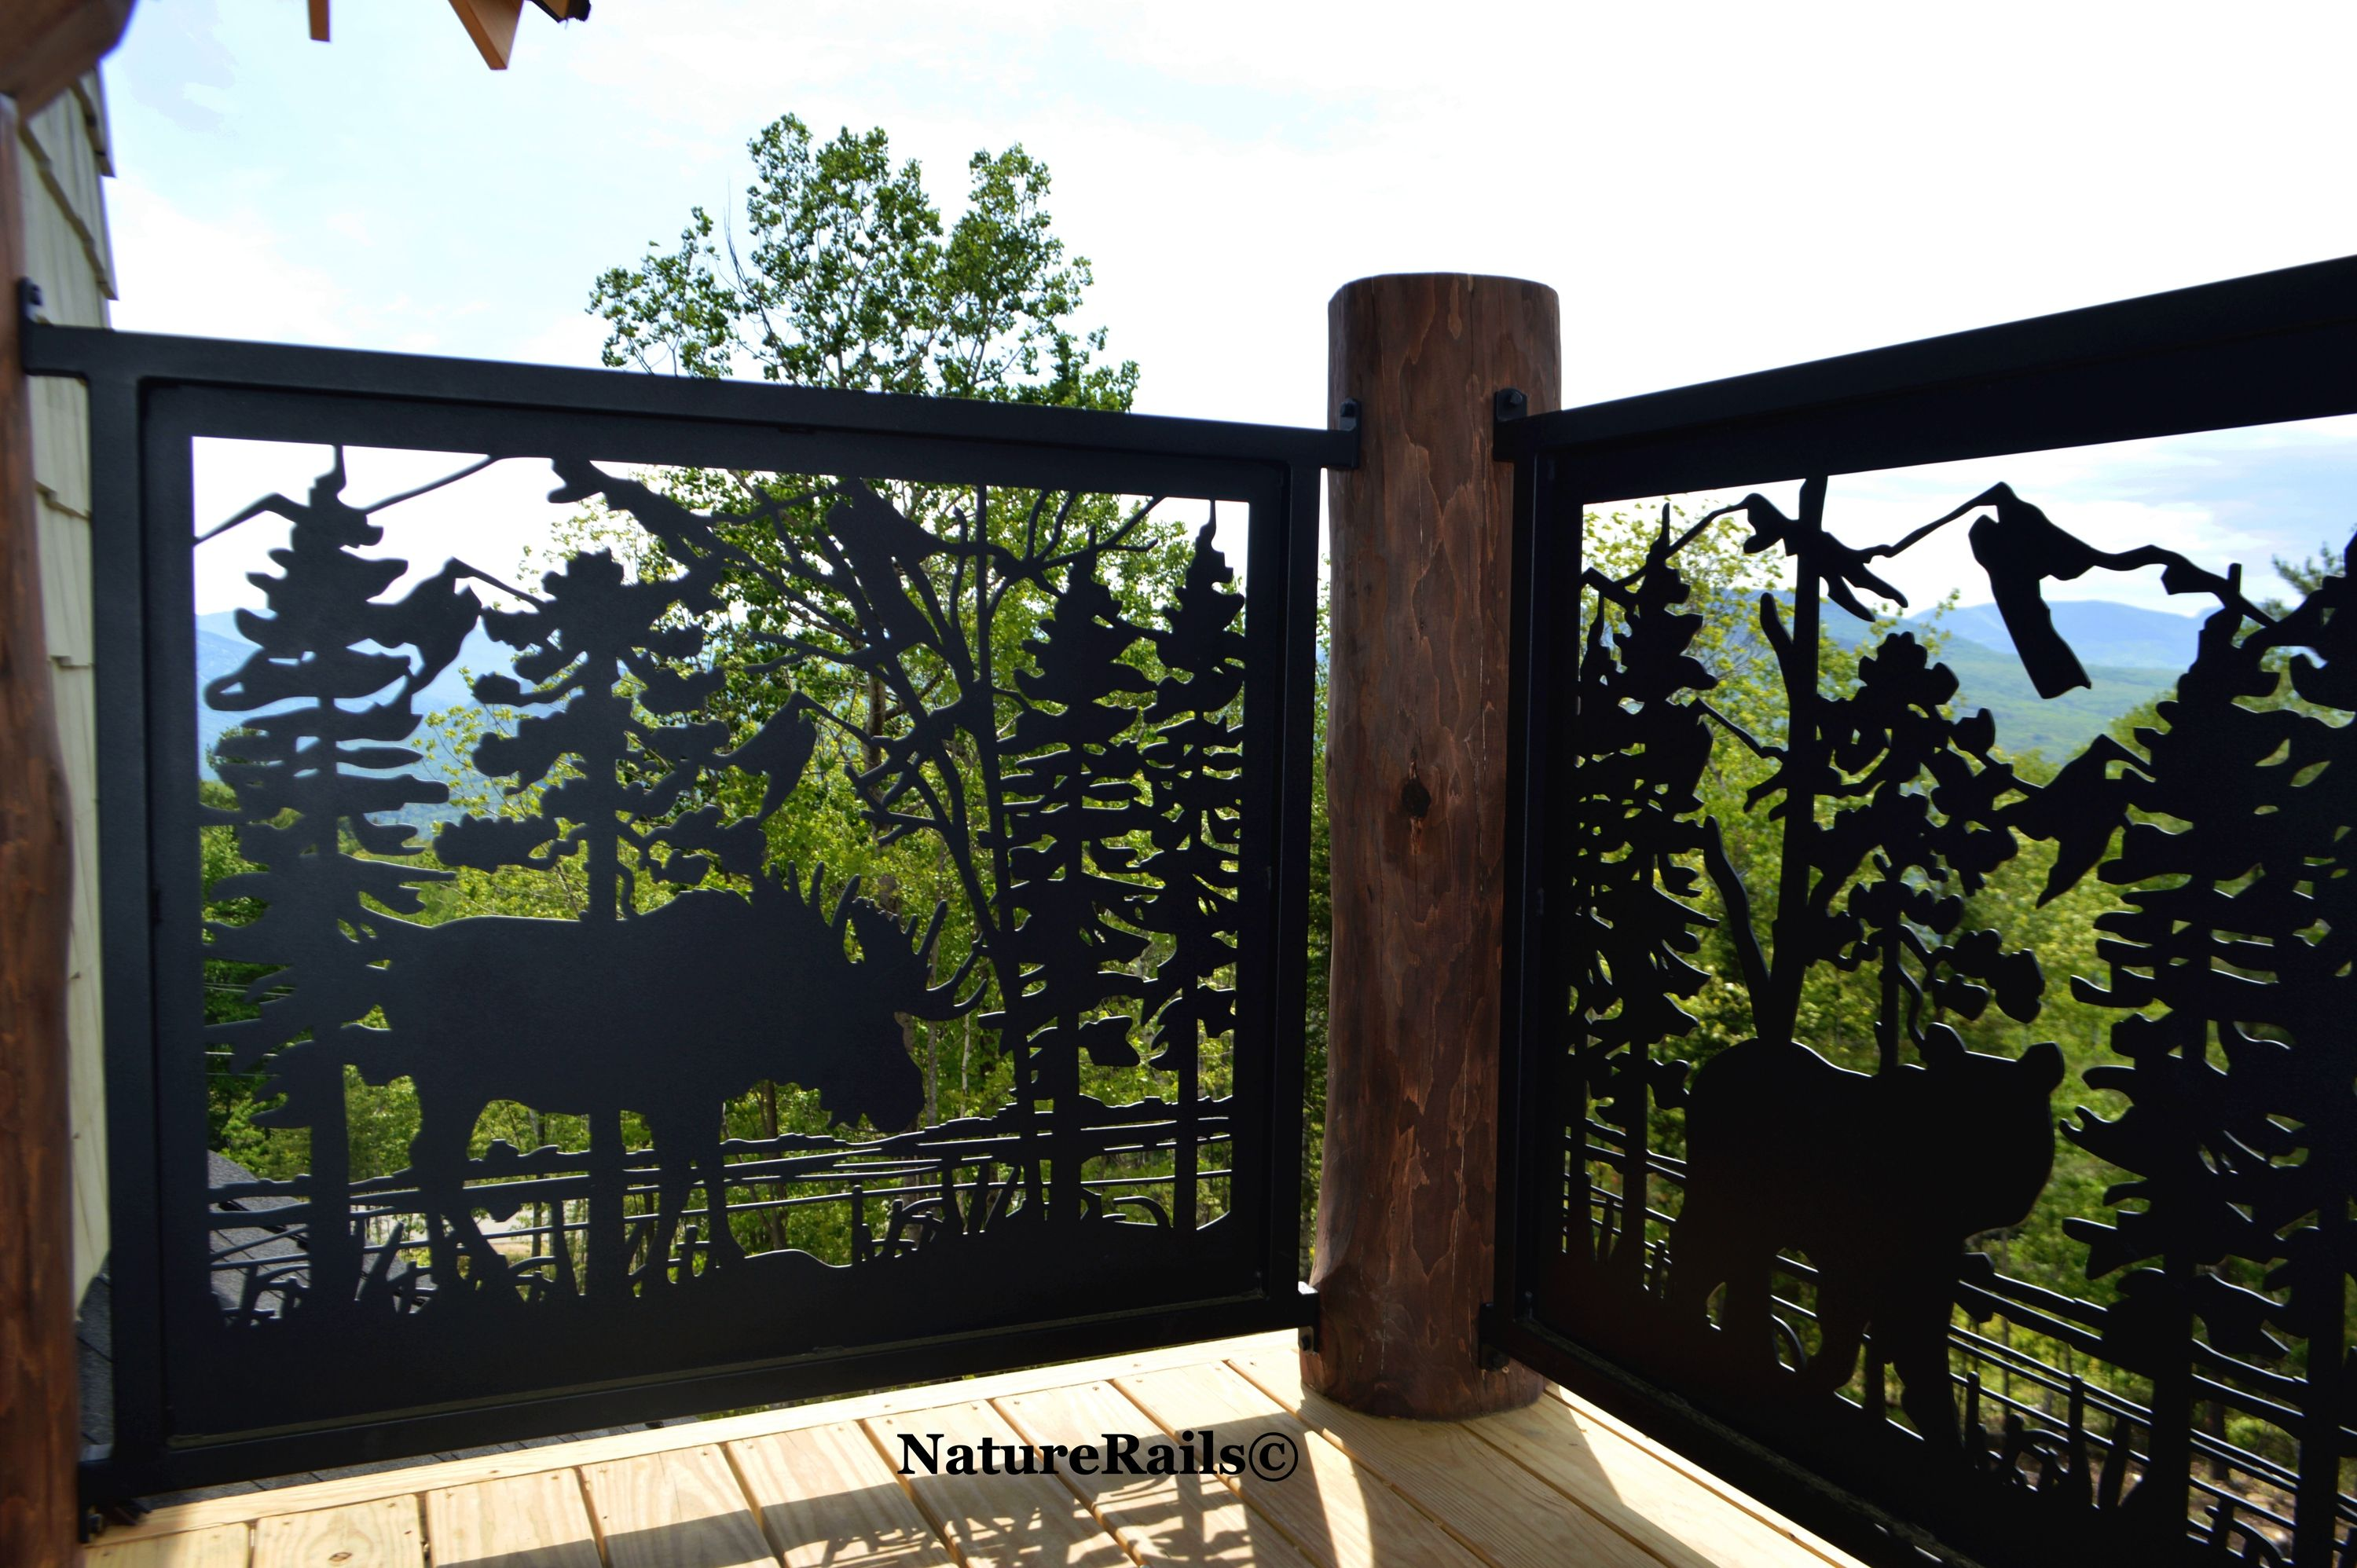 Deck Loft Balcony Railing Railings Outdoor Railing Metal